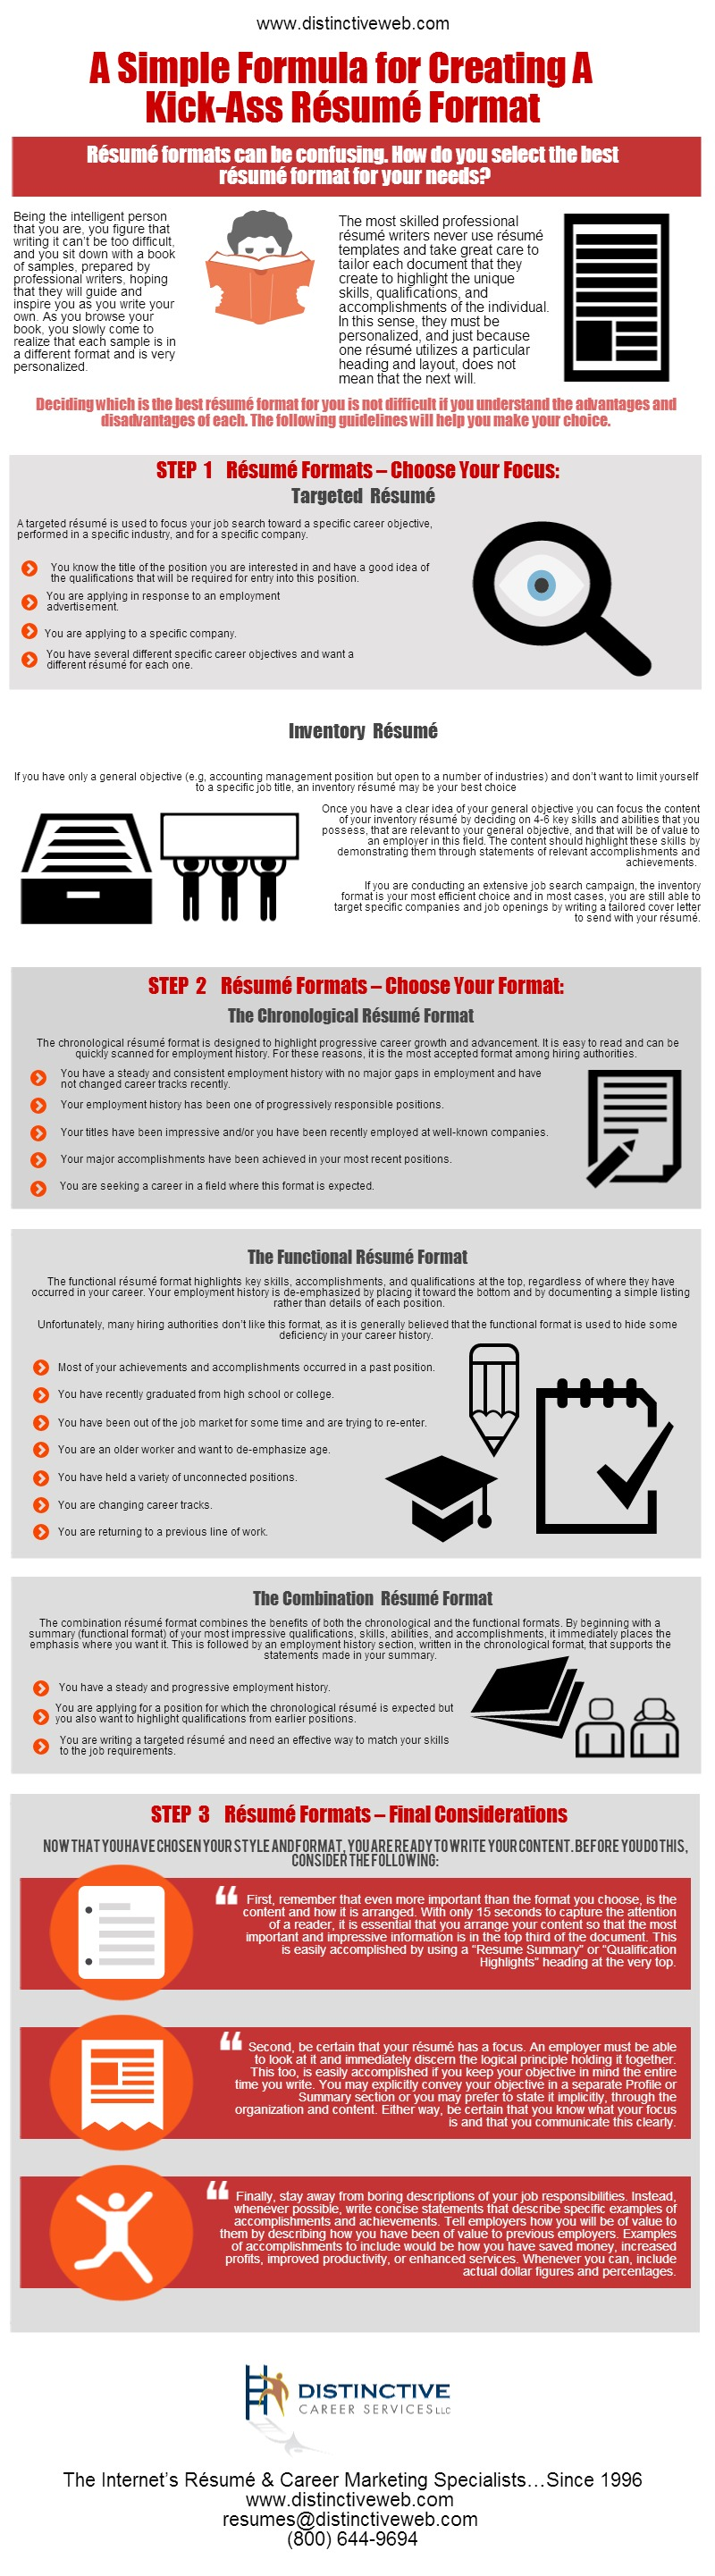 decide the best resume format for your needs with this infographic that details you guidelines that - Deciding On The Resume Format